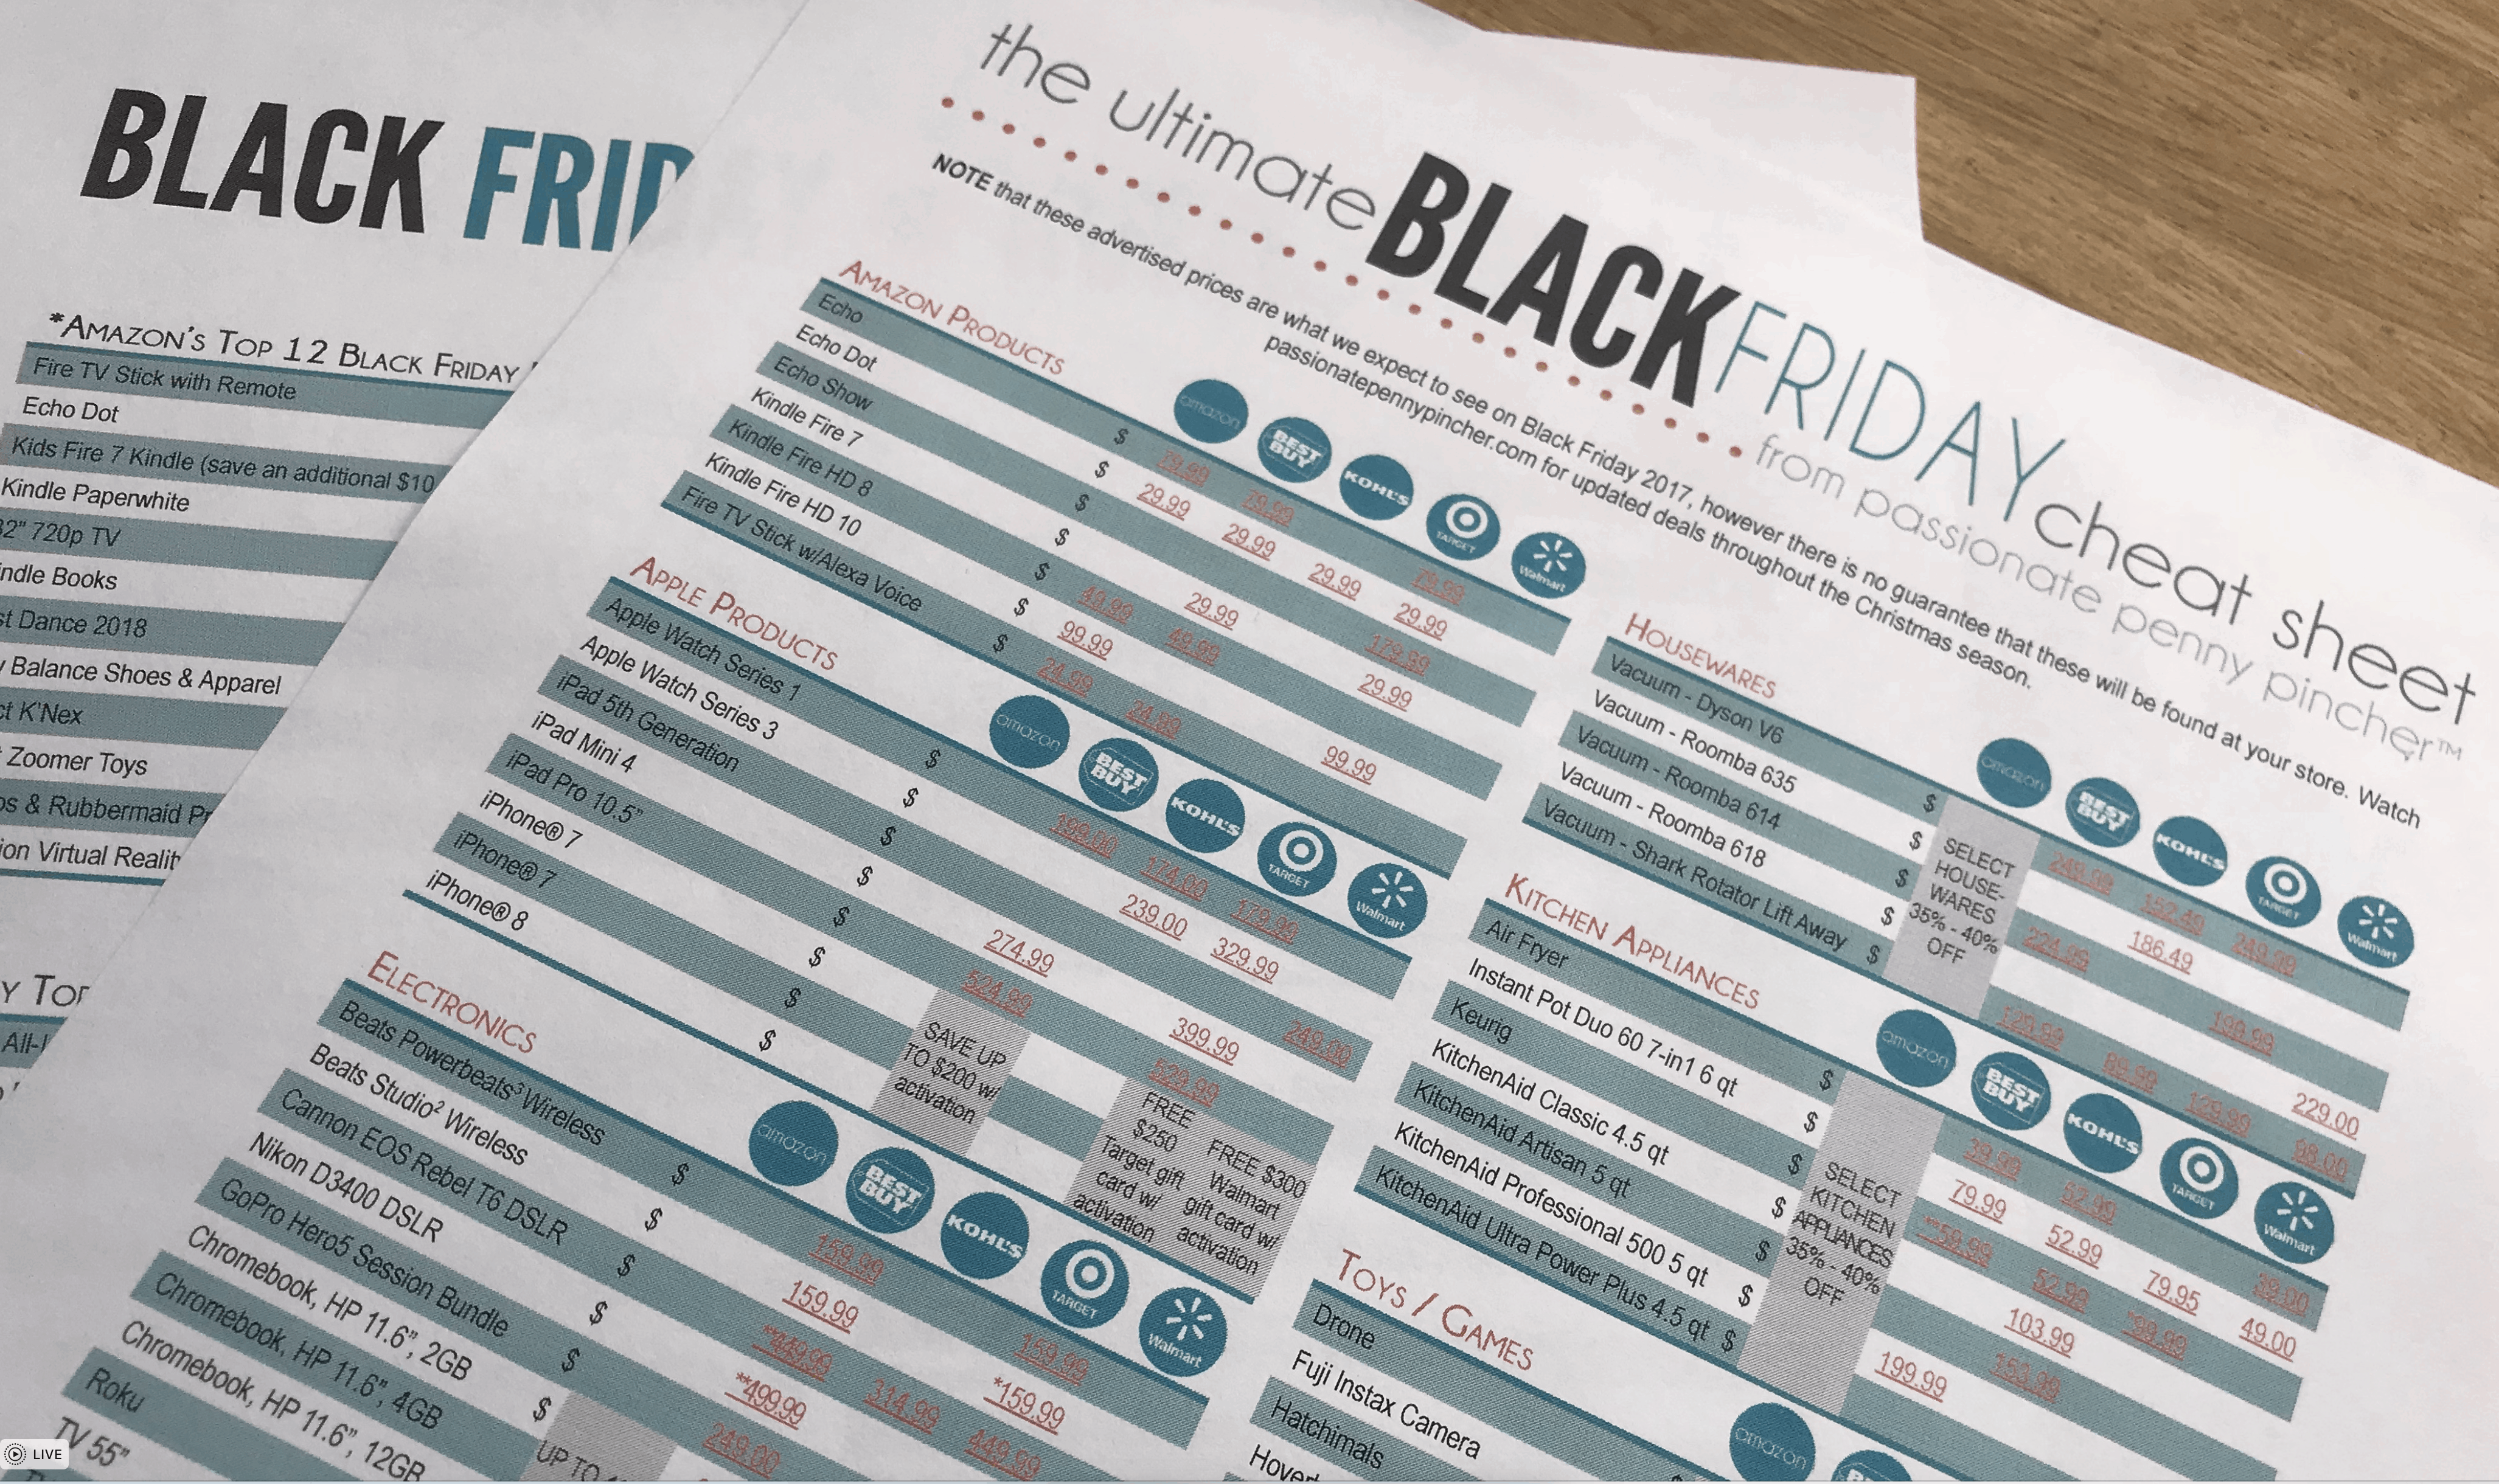 Where The Best Black Friday Deals Are: The Ultimate Black